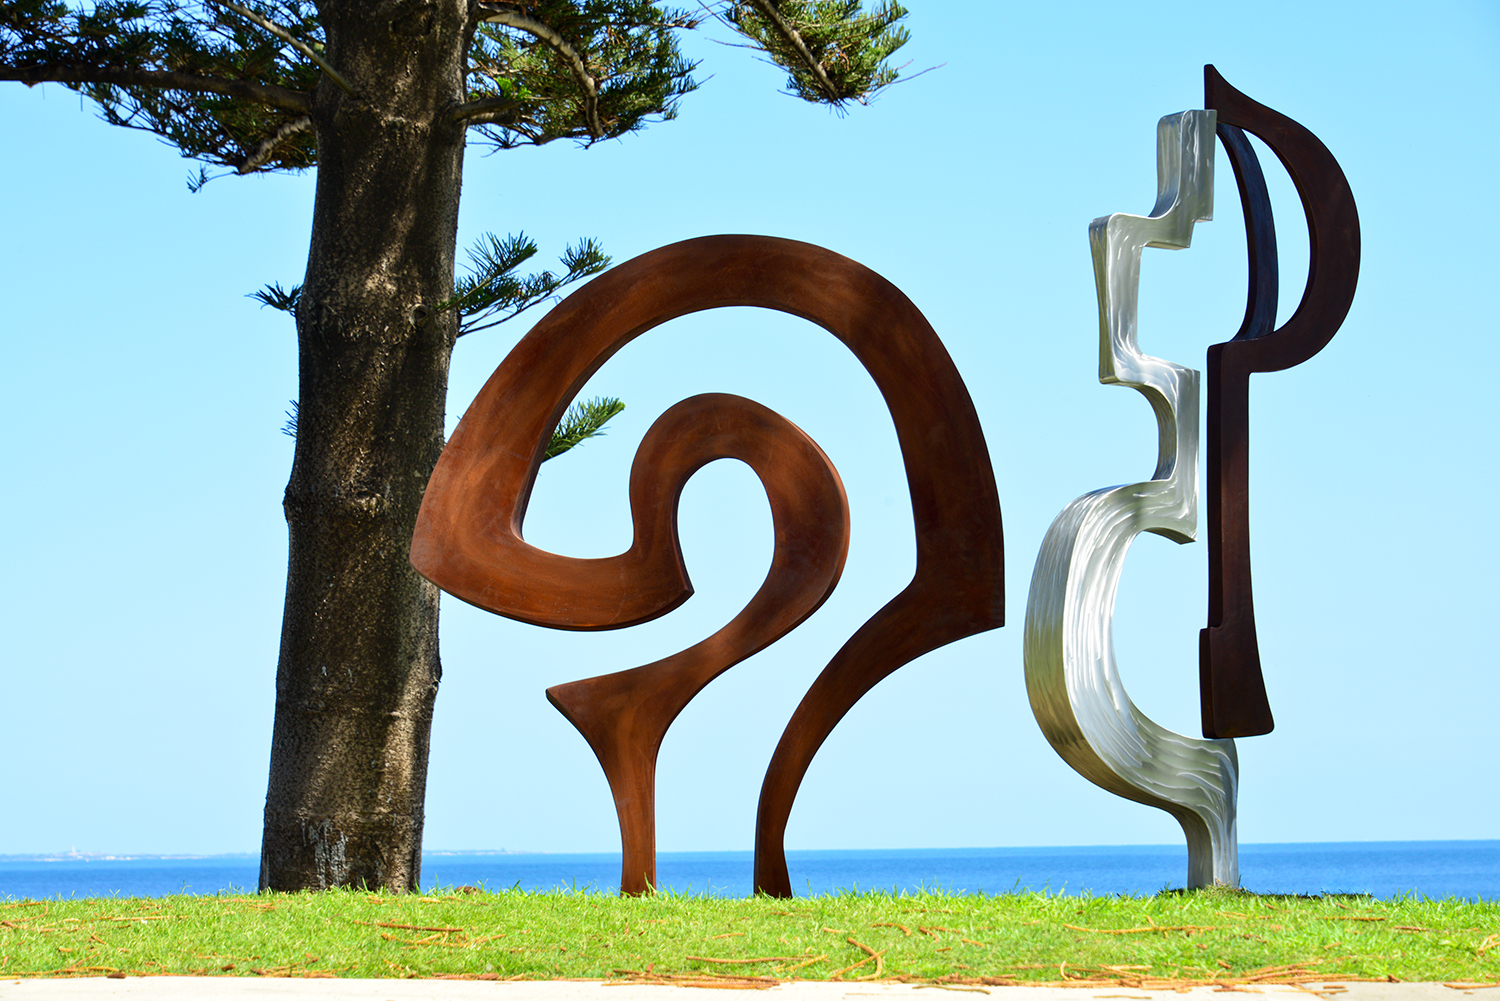 Tim Macfarlane Reid (WA), one door opens, Sculpture by the Sea, Cottesloe 2015. Photo Clyde Yee.